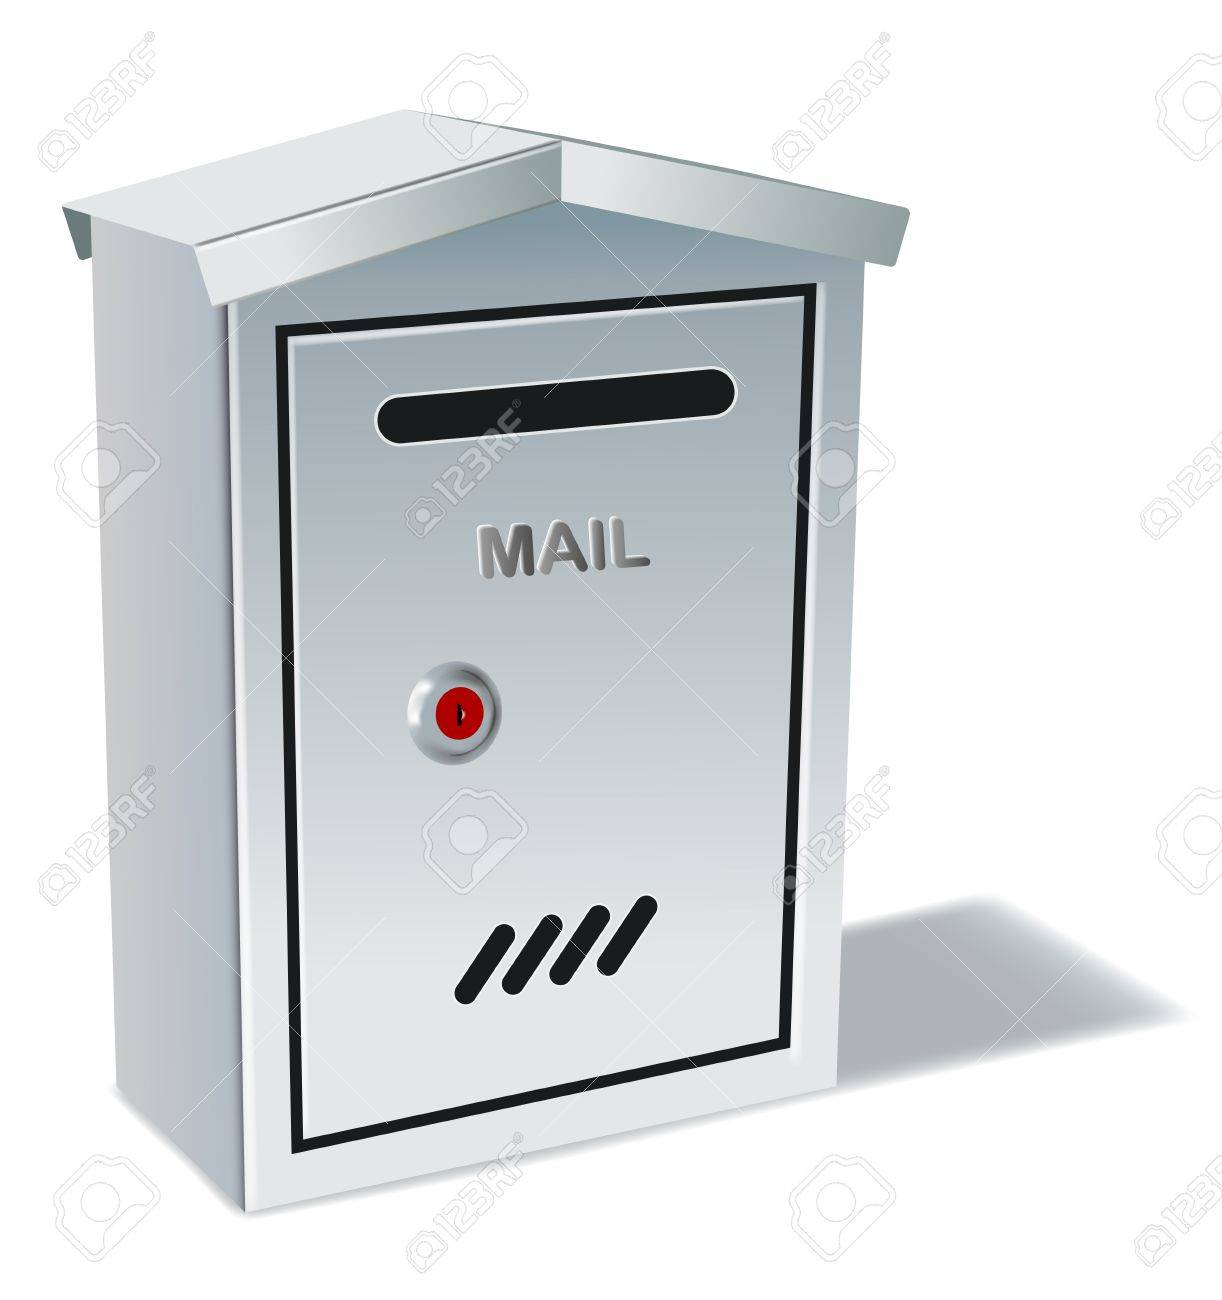 metal mailbox on white background,gradient mesh and transparency used Stock Vector - 17431581